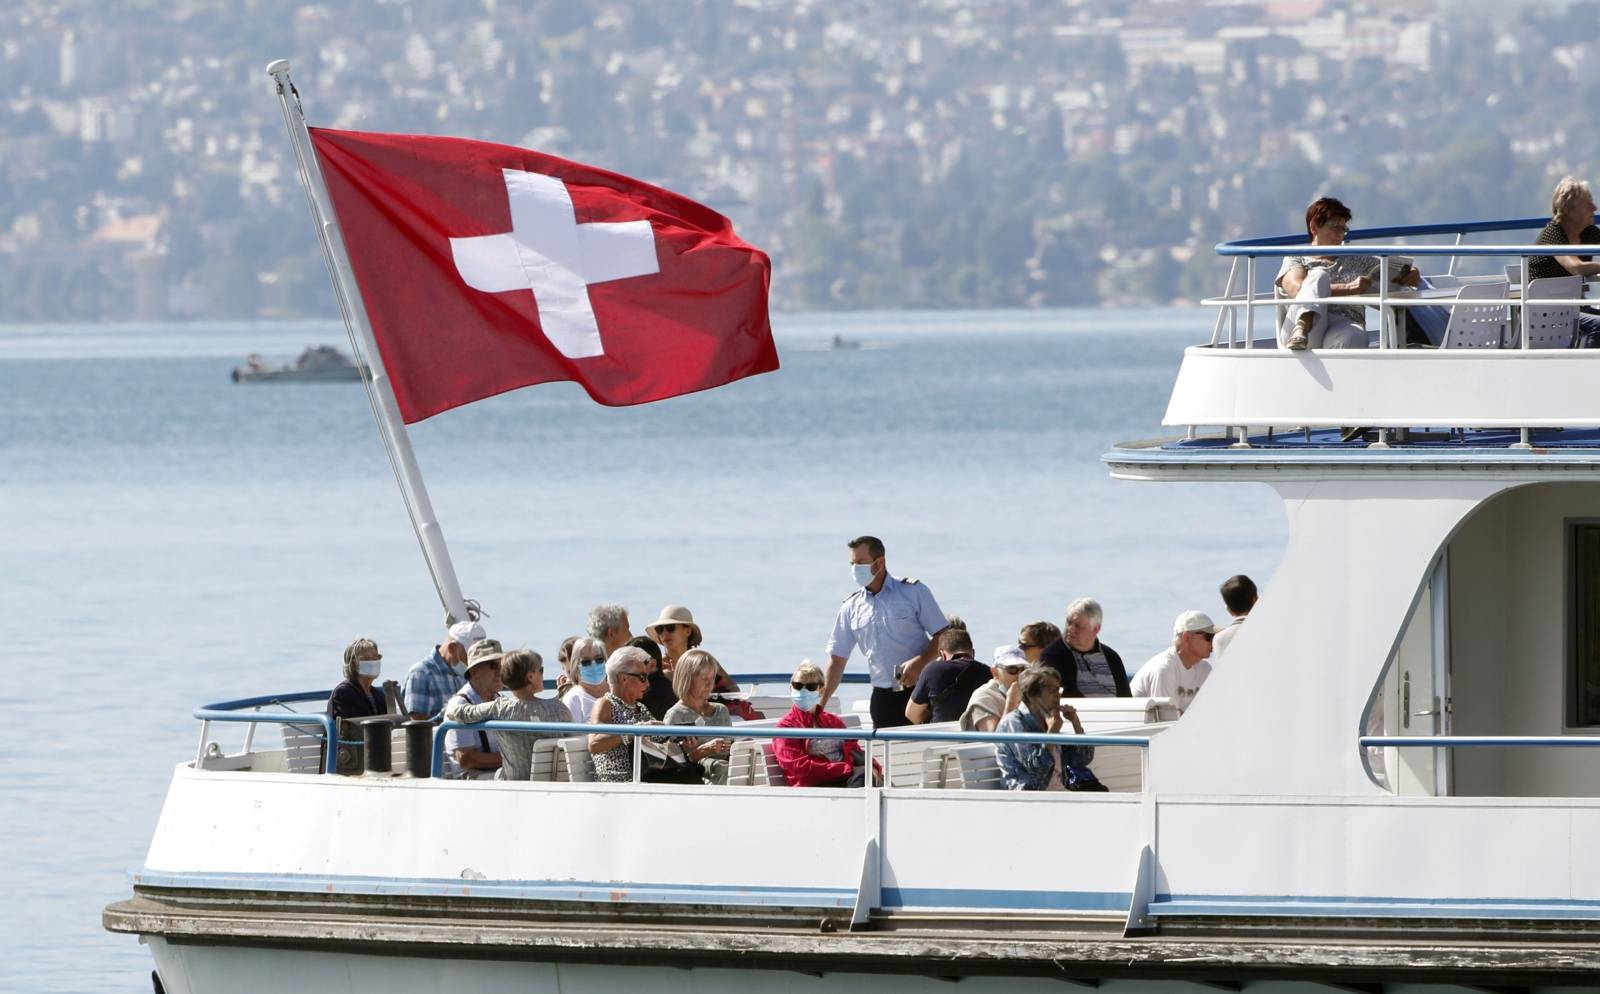 Switzerland's national flag flies above passengers as tourist vessel Limmat sails on Lake Zurich in Zurich